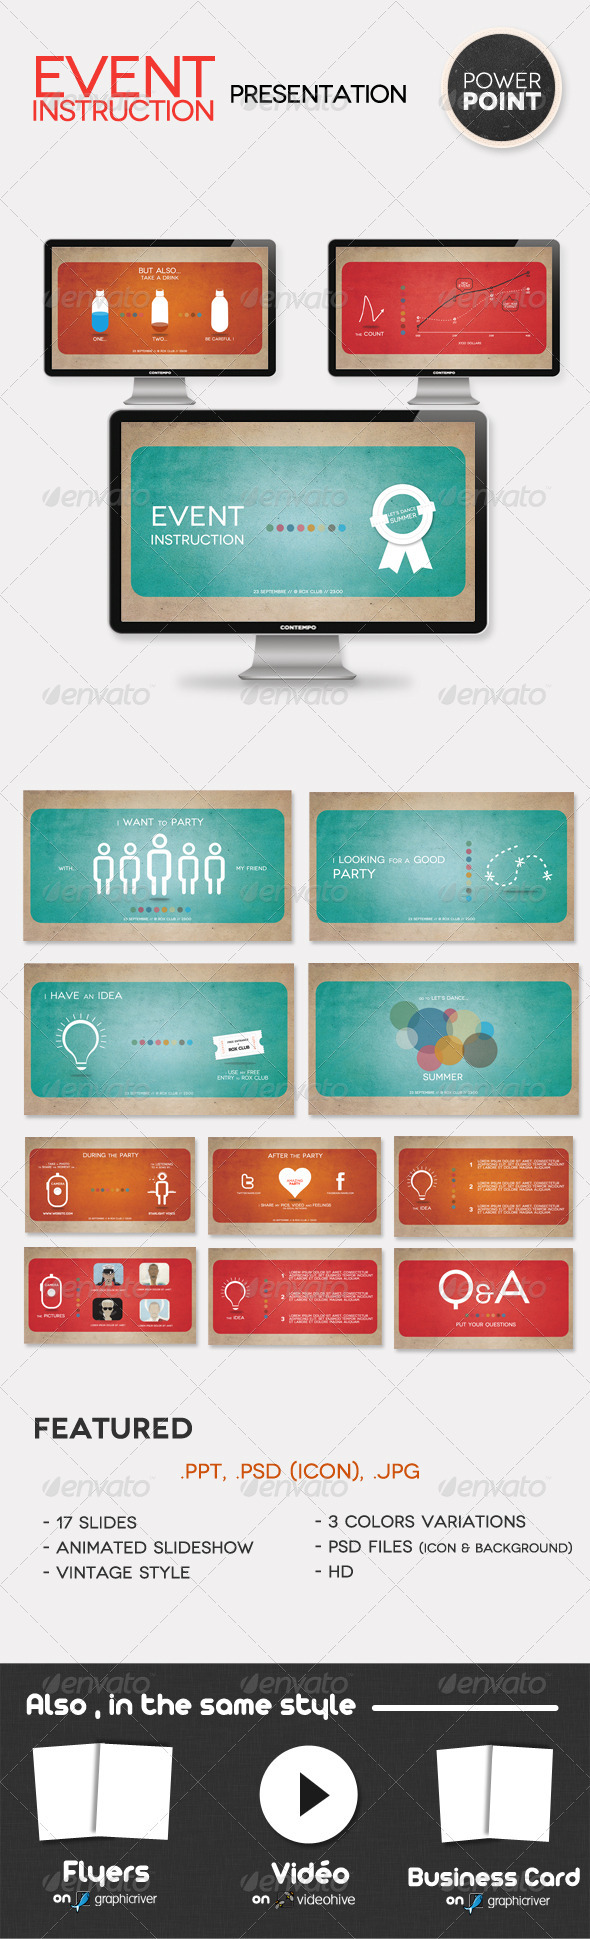 GraphicRiver Event Instruction Presentation PowerPoint 519428